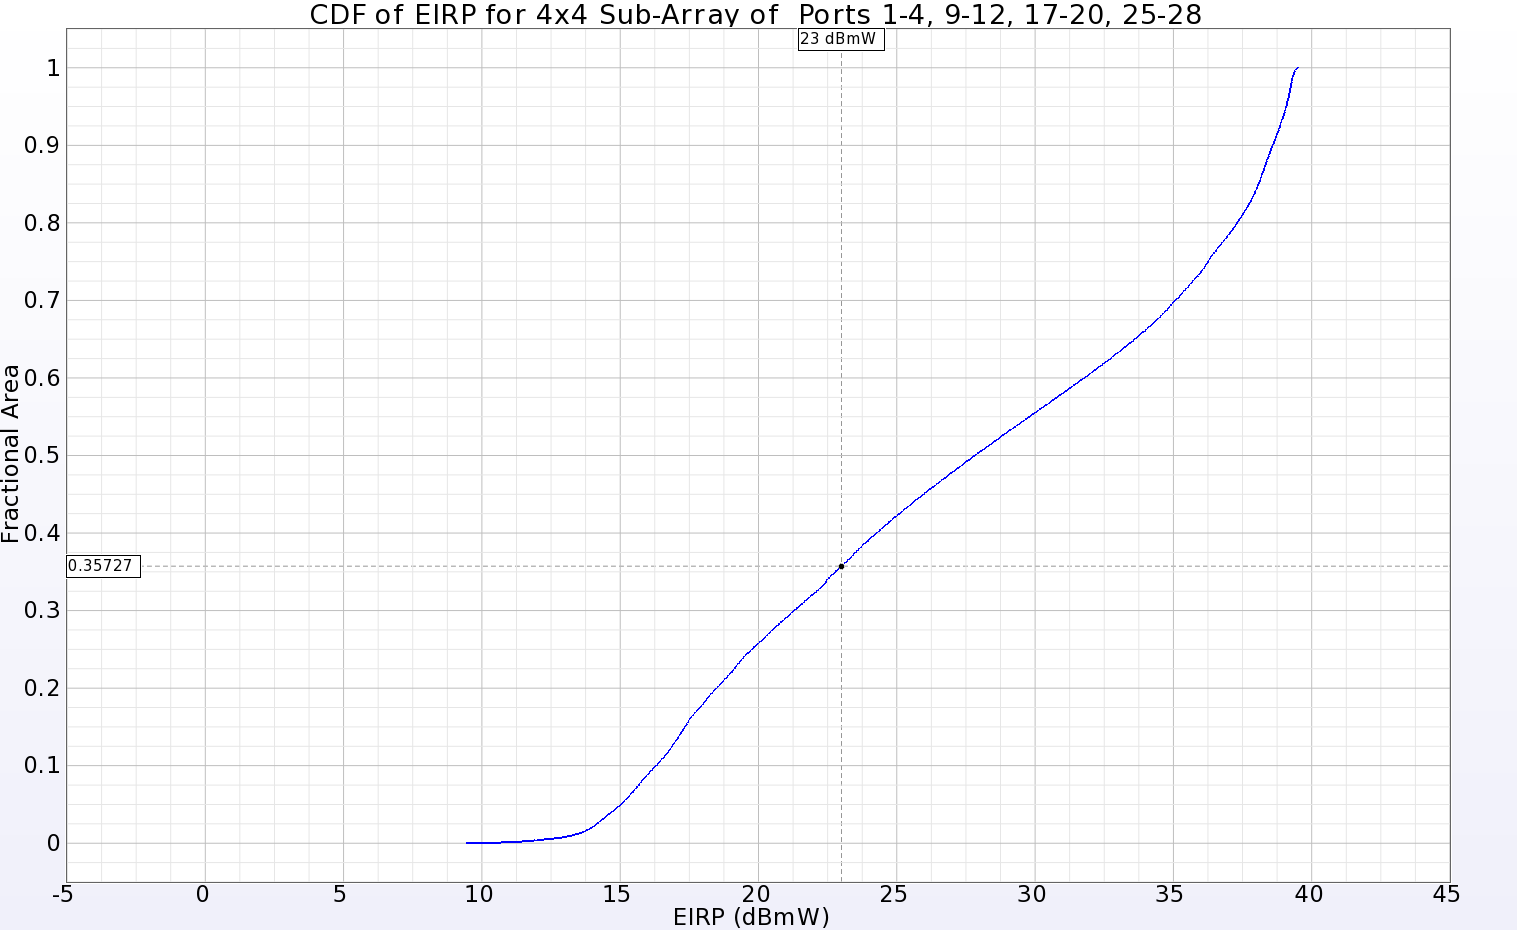 Figure 12: The CDF of EIRP plot for a 4x4 sub-array located in one quadrant of the main array showing positive gain over 64.3% of the far-zone sphere for an input power of 23 dBmW.